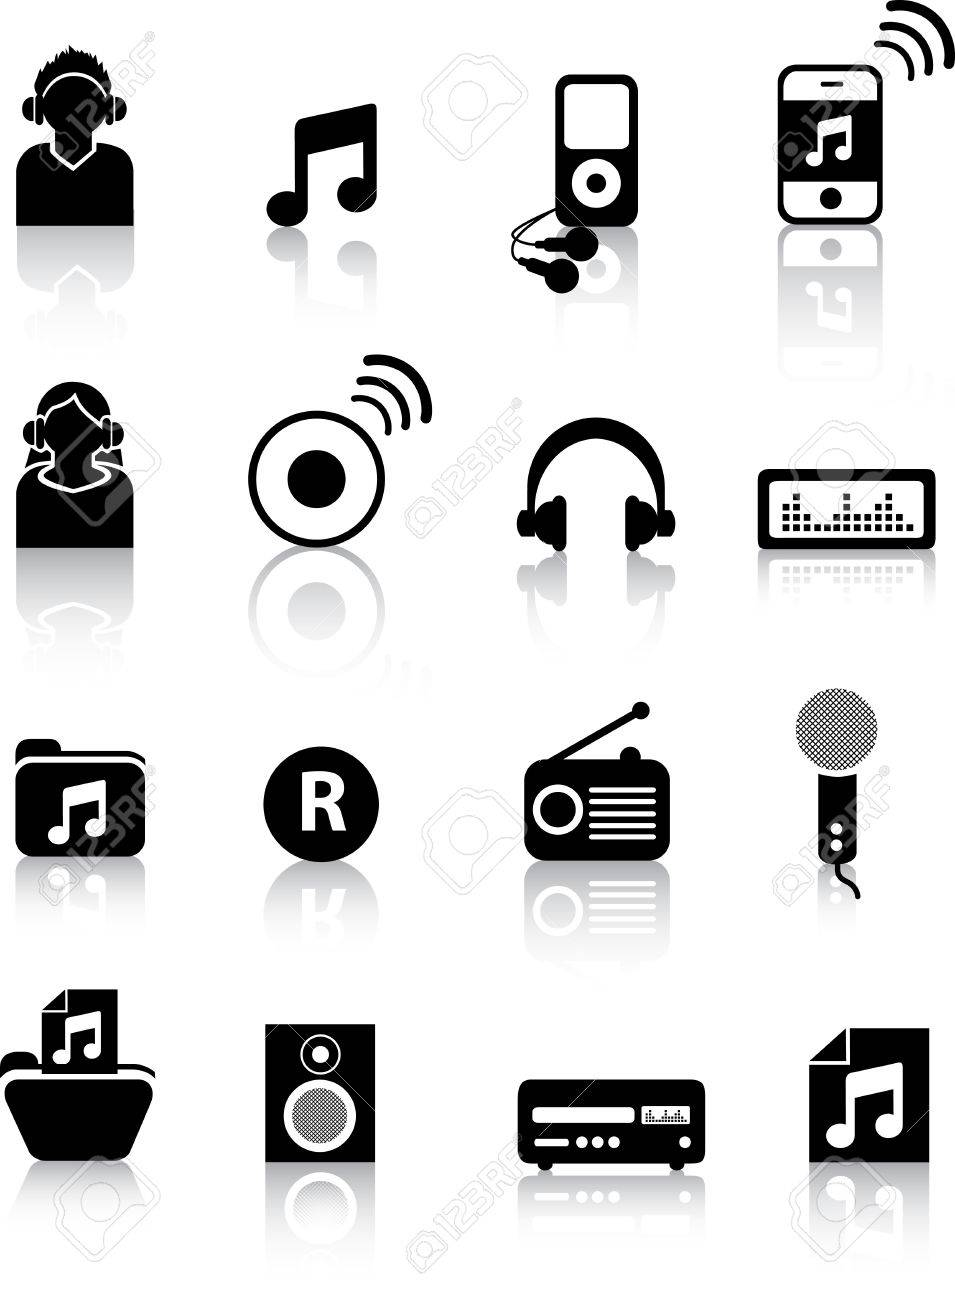 A set of modern icon illustrations for the music and entertainment industry Stock Vector - 4594845